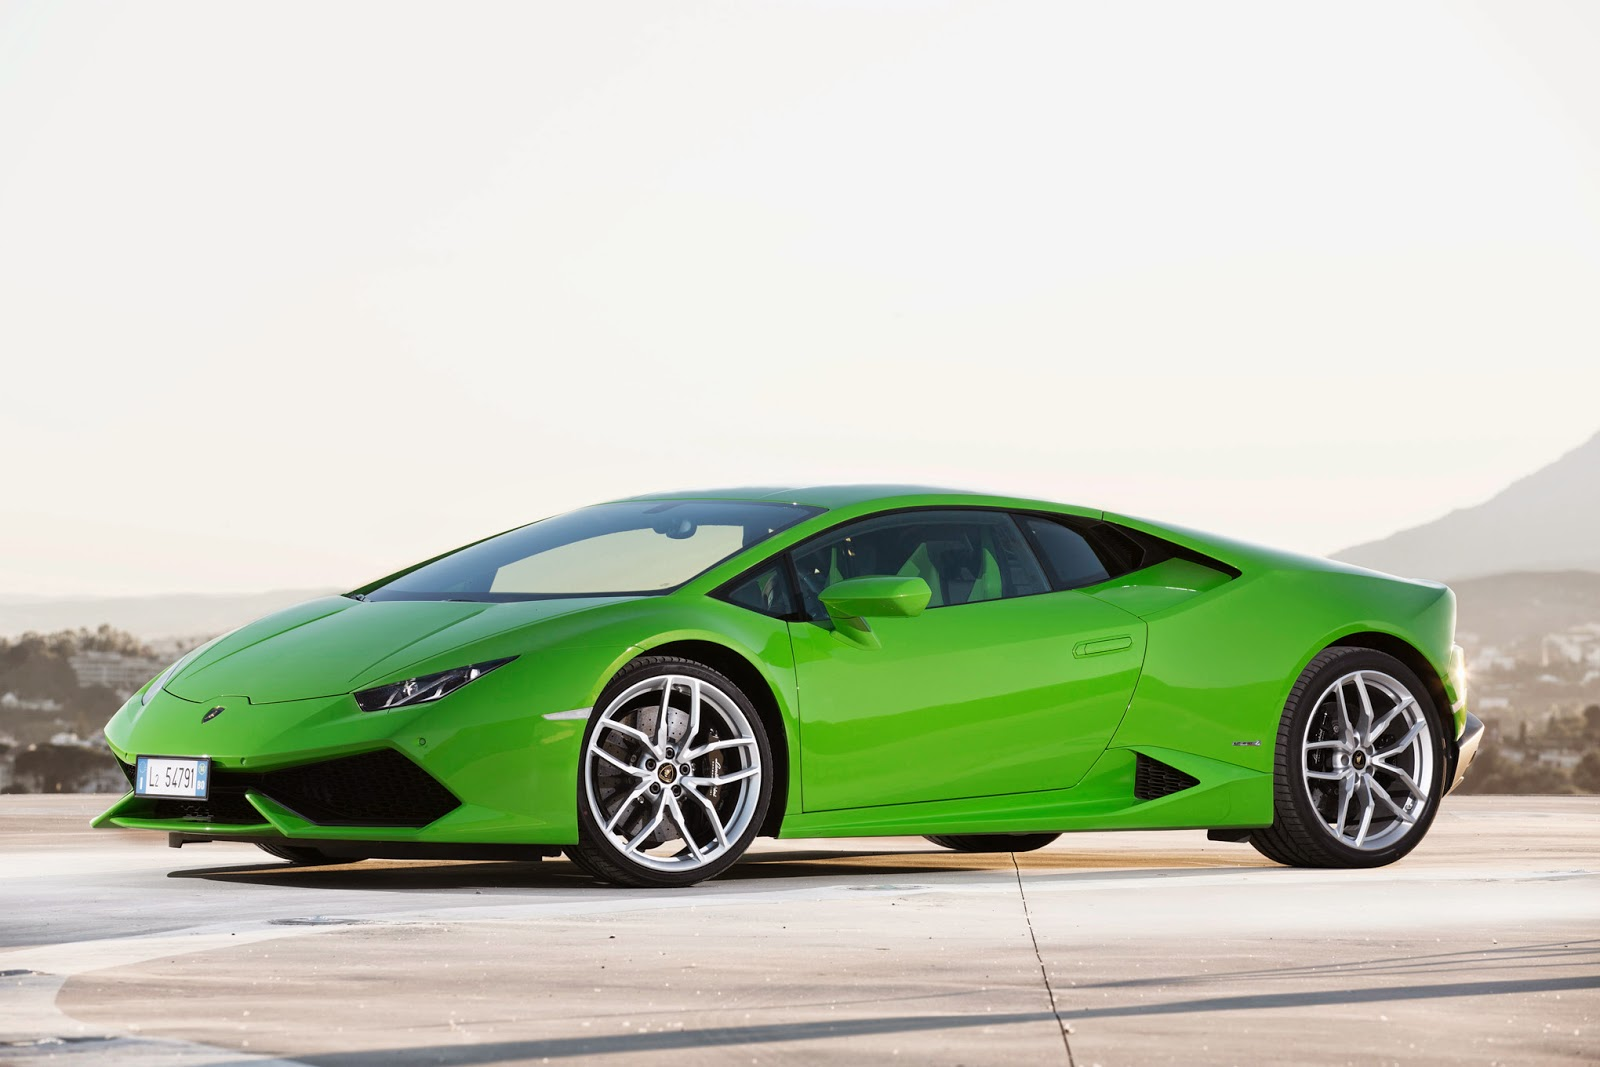 lamborghini huracan 2015 price dubai 2015 lamborghini. Black Bedroom Furniture Sets. Home Design Ideas